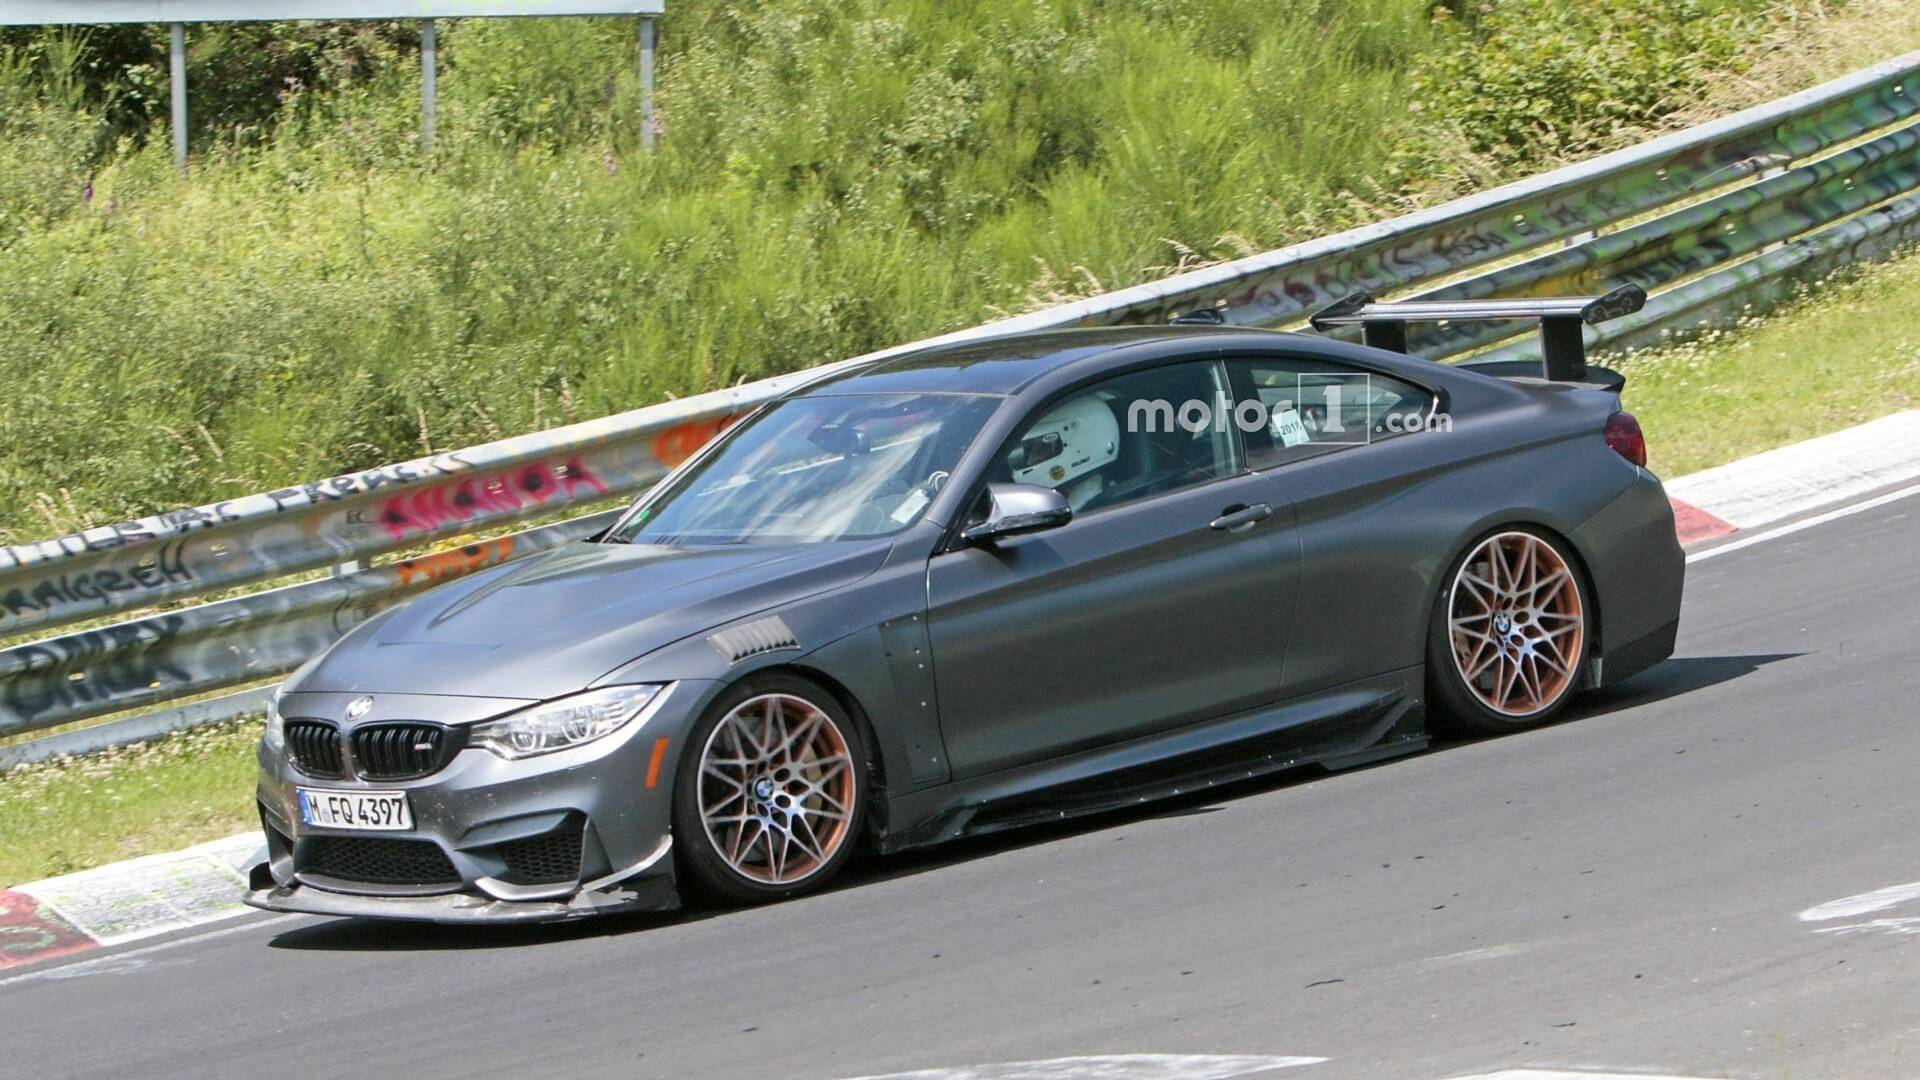 Bmw M4 Gts Spied Testing With Extreme Aero Kit Update